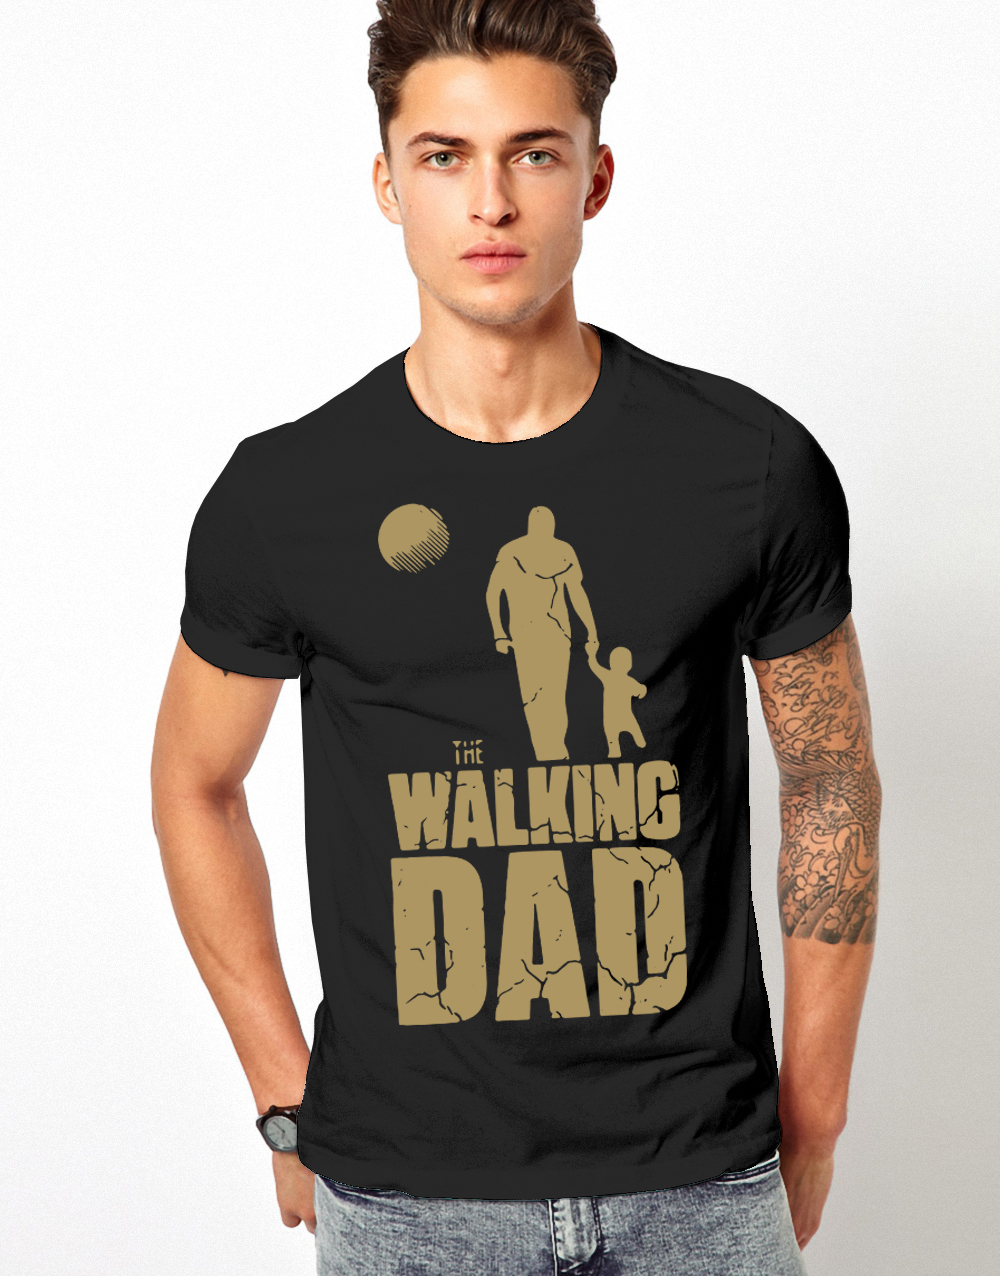 Official The Walking Dad shirt